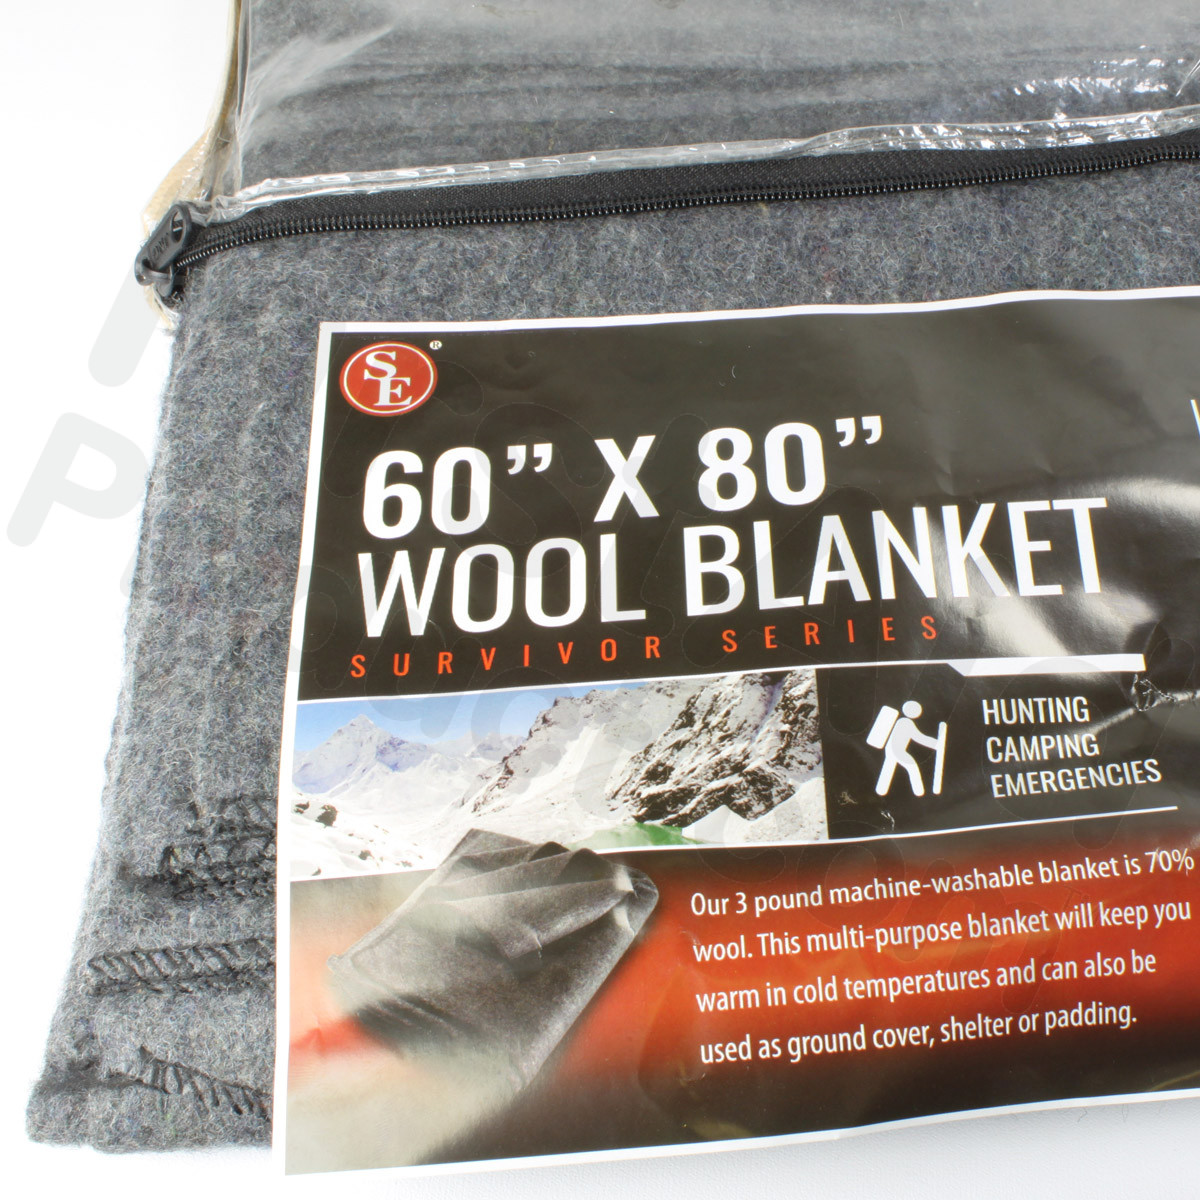 first aid 60 70 wool blanket 60 x 80. Black Bedroom Furniture Sets. Home Design Ideas